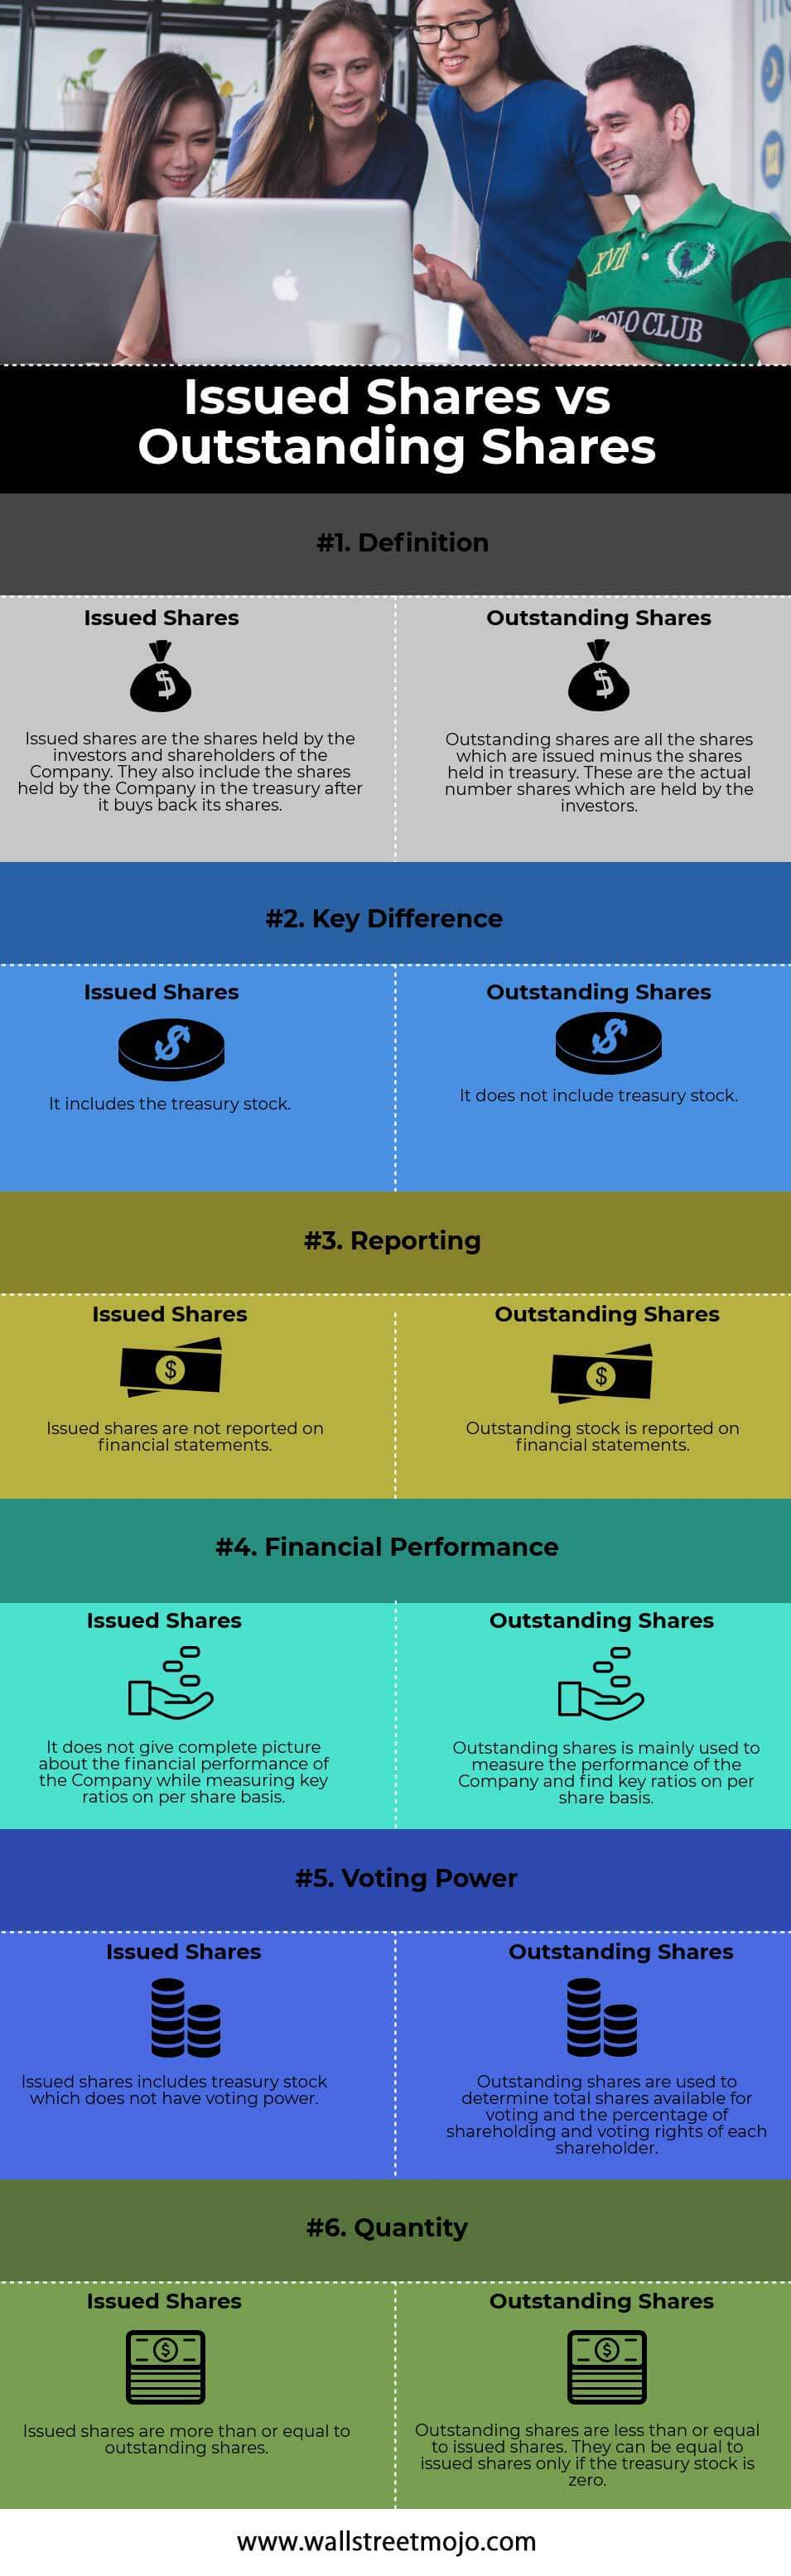 Issued-Shares-vs-Outstanding-Shares-info